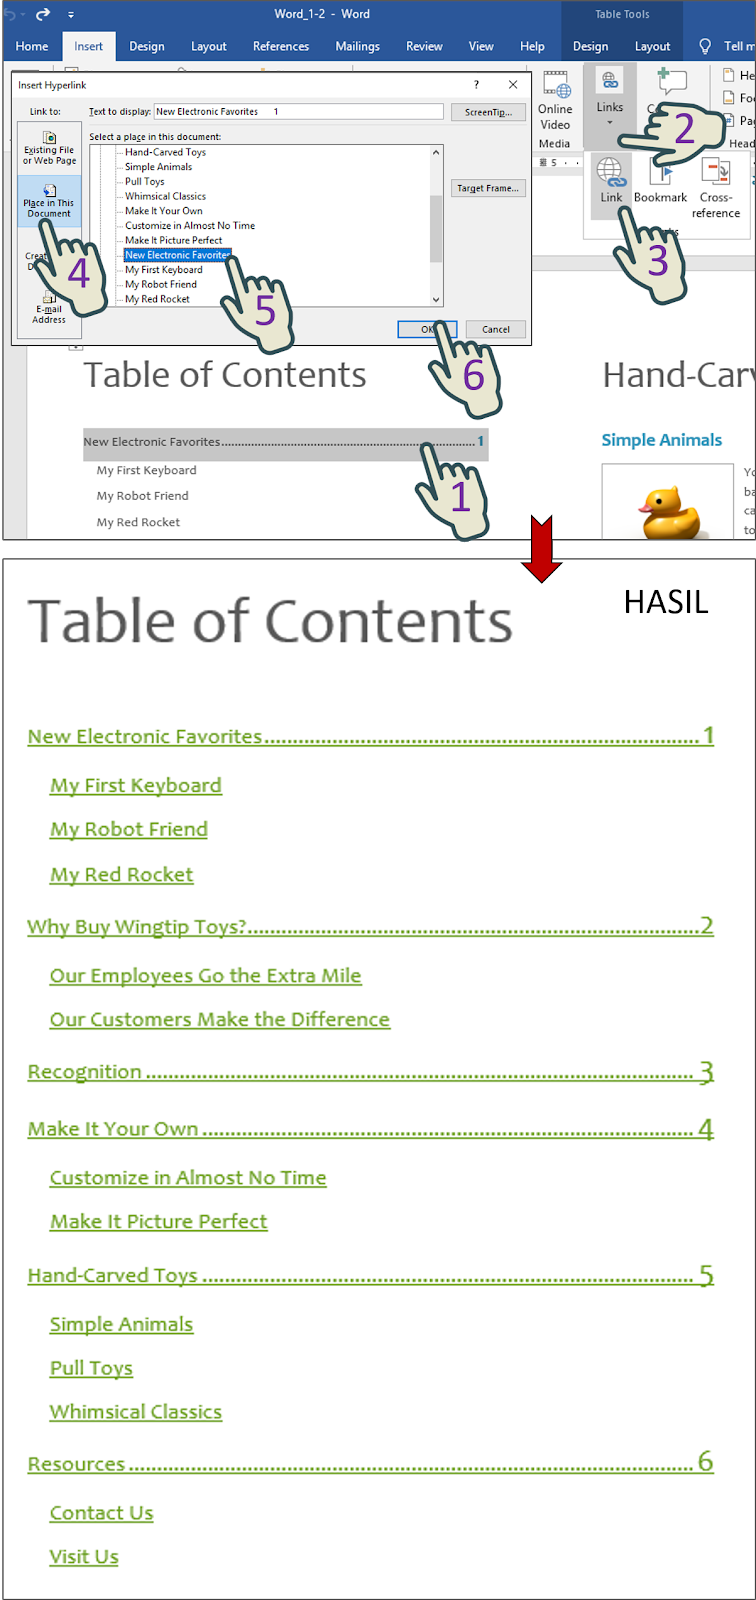 Insert a hyperlink from each heading in the table of contents